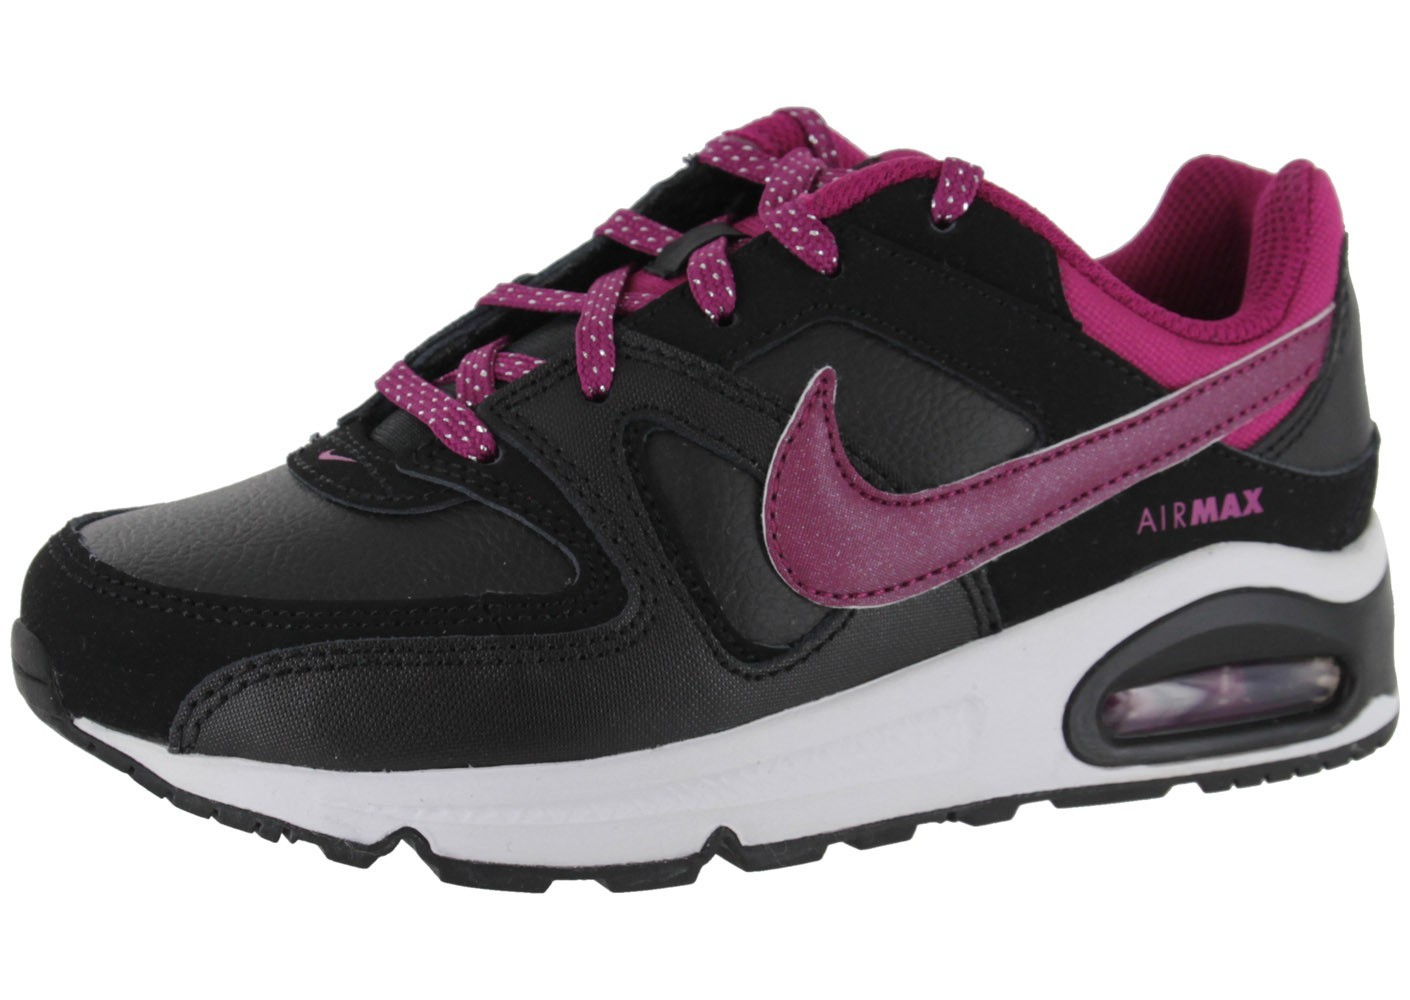 Nike Air Max Command Femme Officiel Atelier  [9875793]